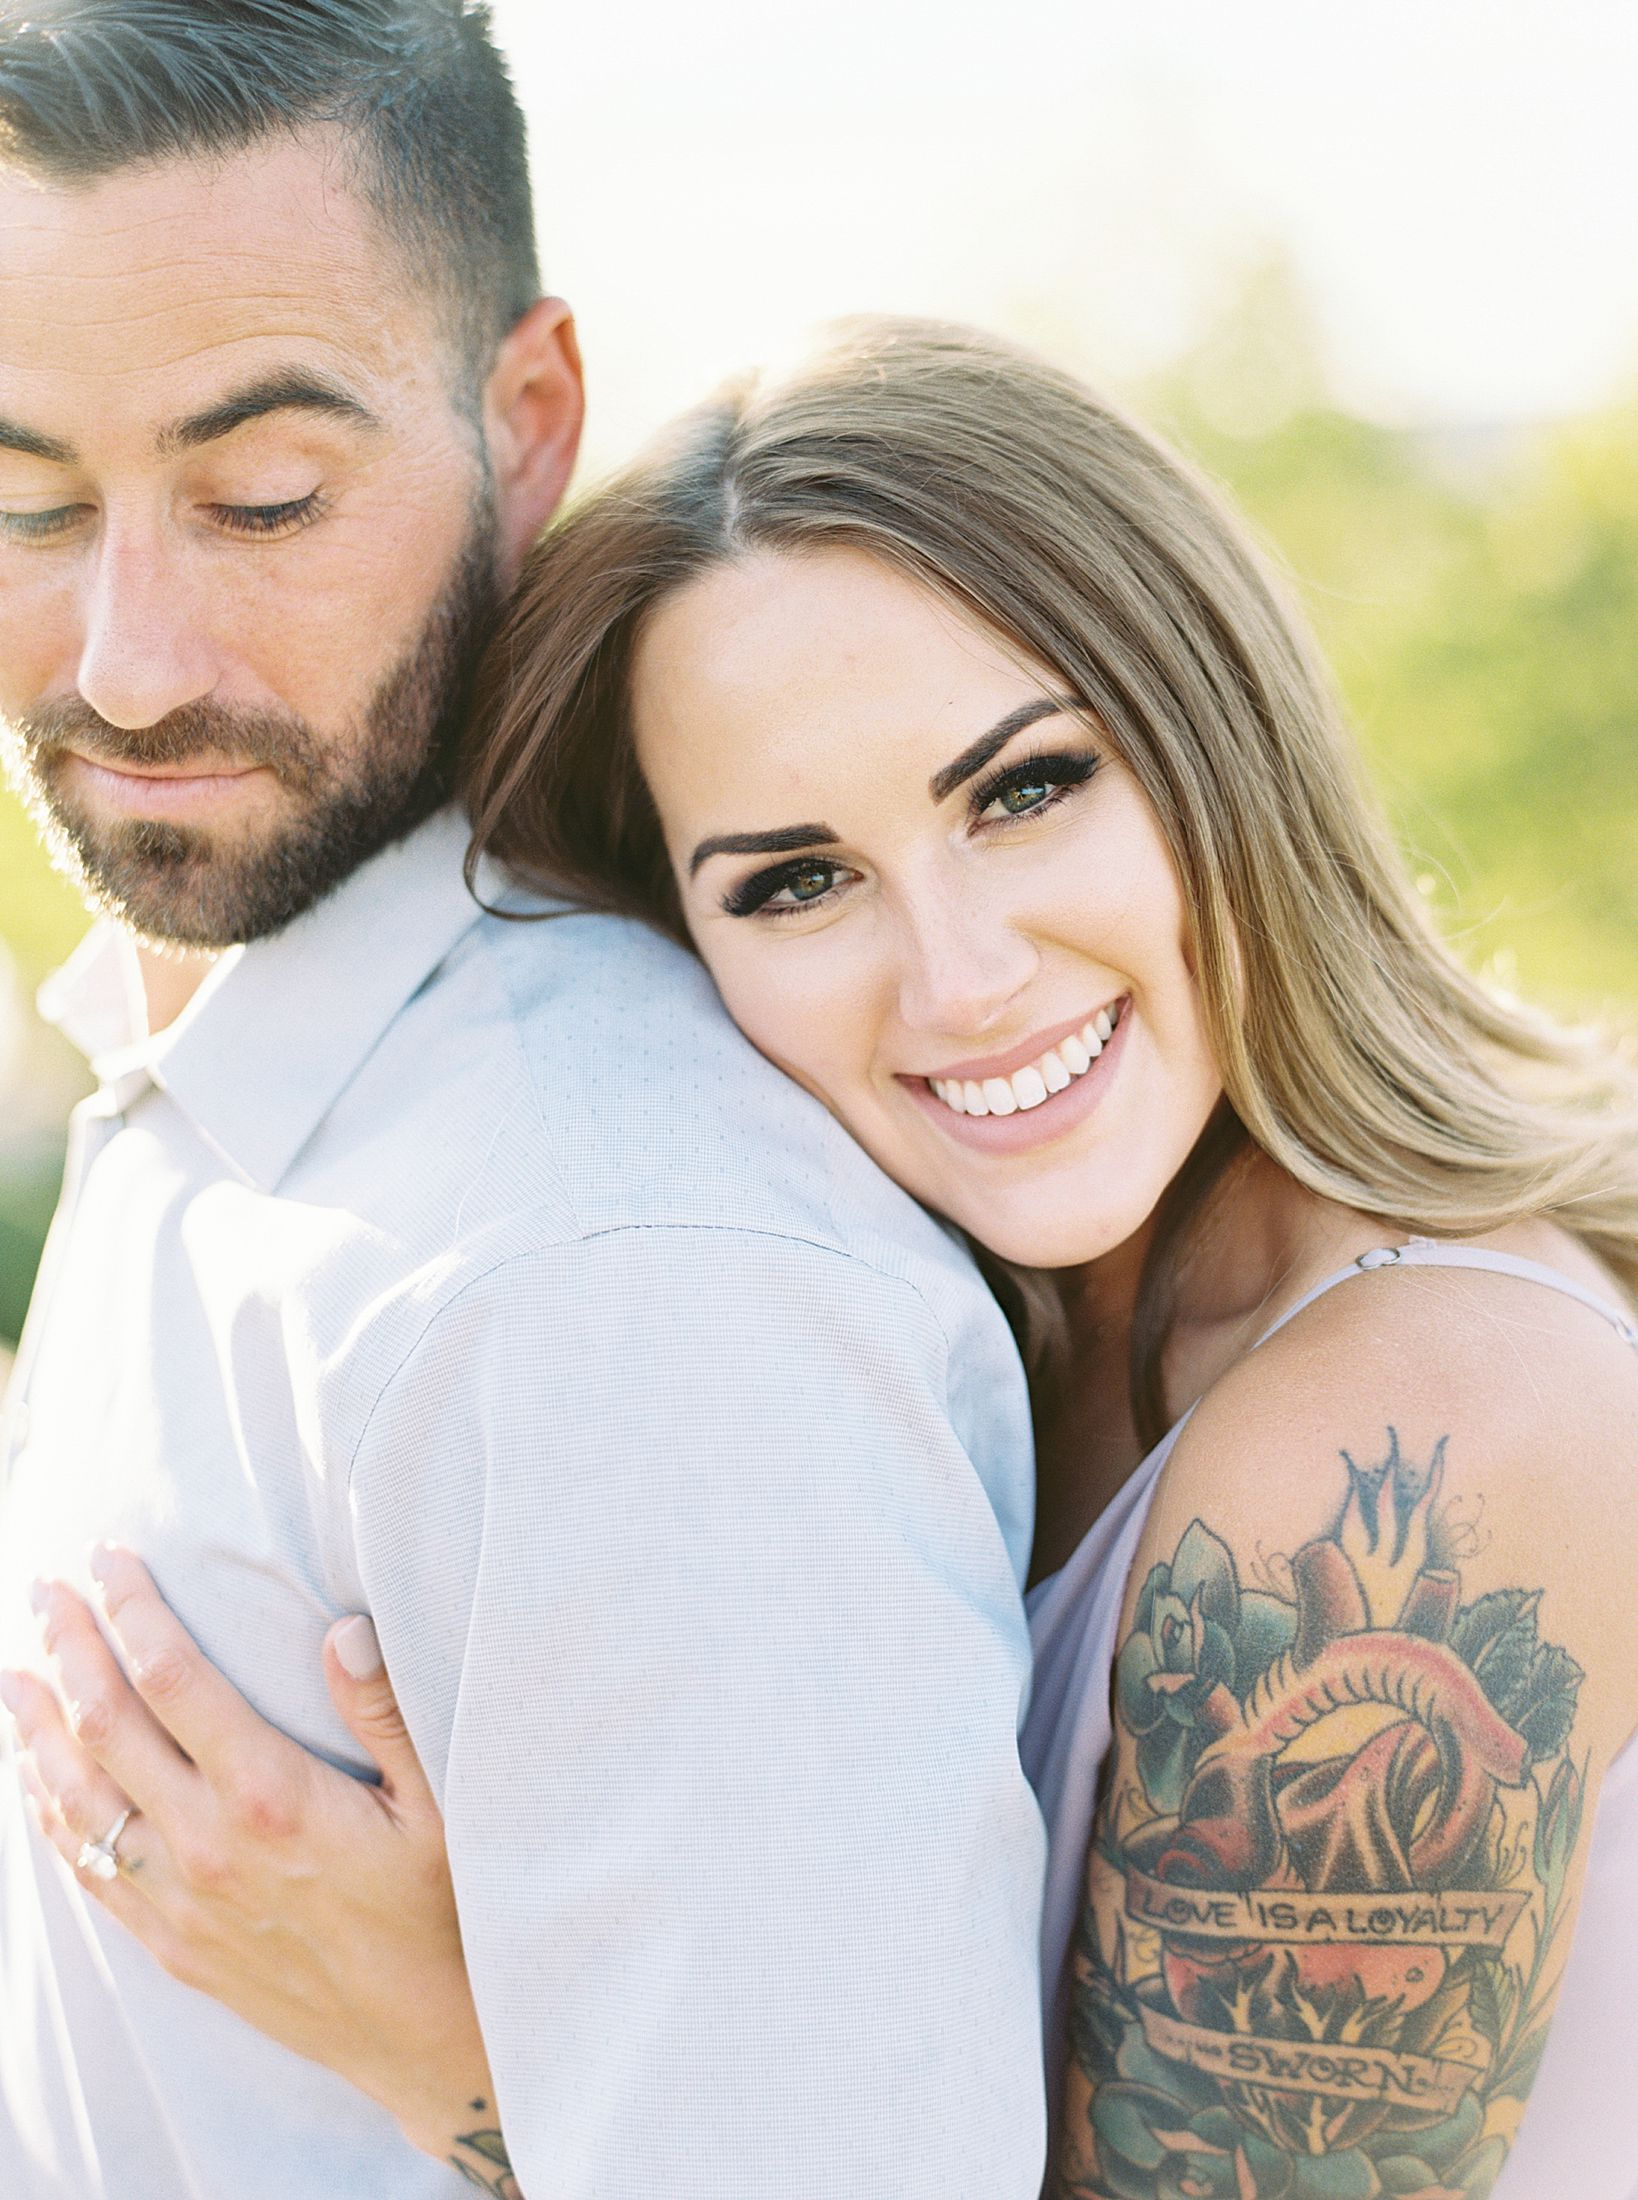 Helwig Winery Engagement Session - Steffanie and Rich - Jenn Robirds Events - Ashley Baumgartner - Sacramento Wedding Photographer - Private Estate Wedding Photographer - Helwig WInery Wedding_0090.jpg